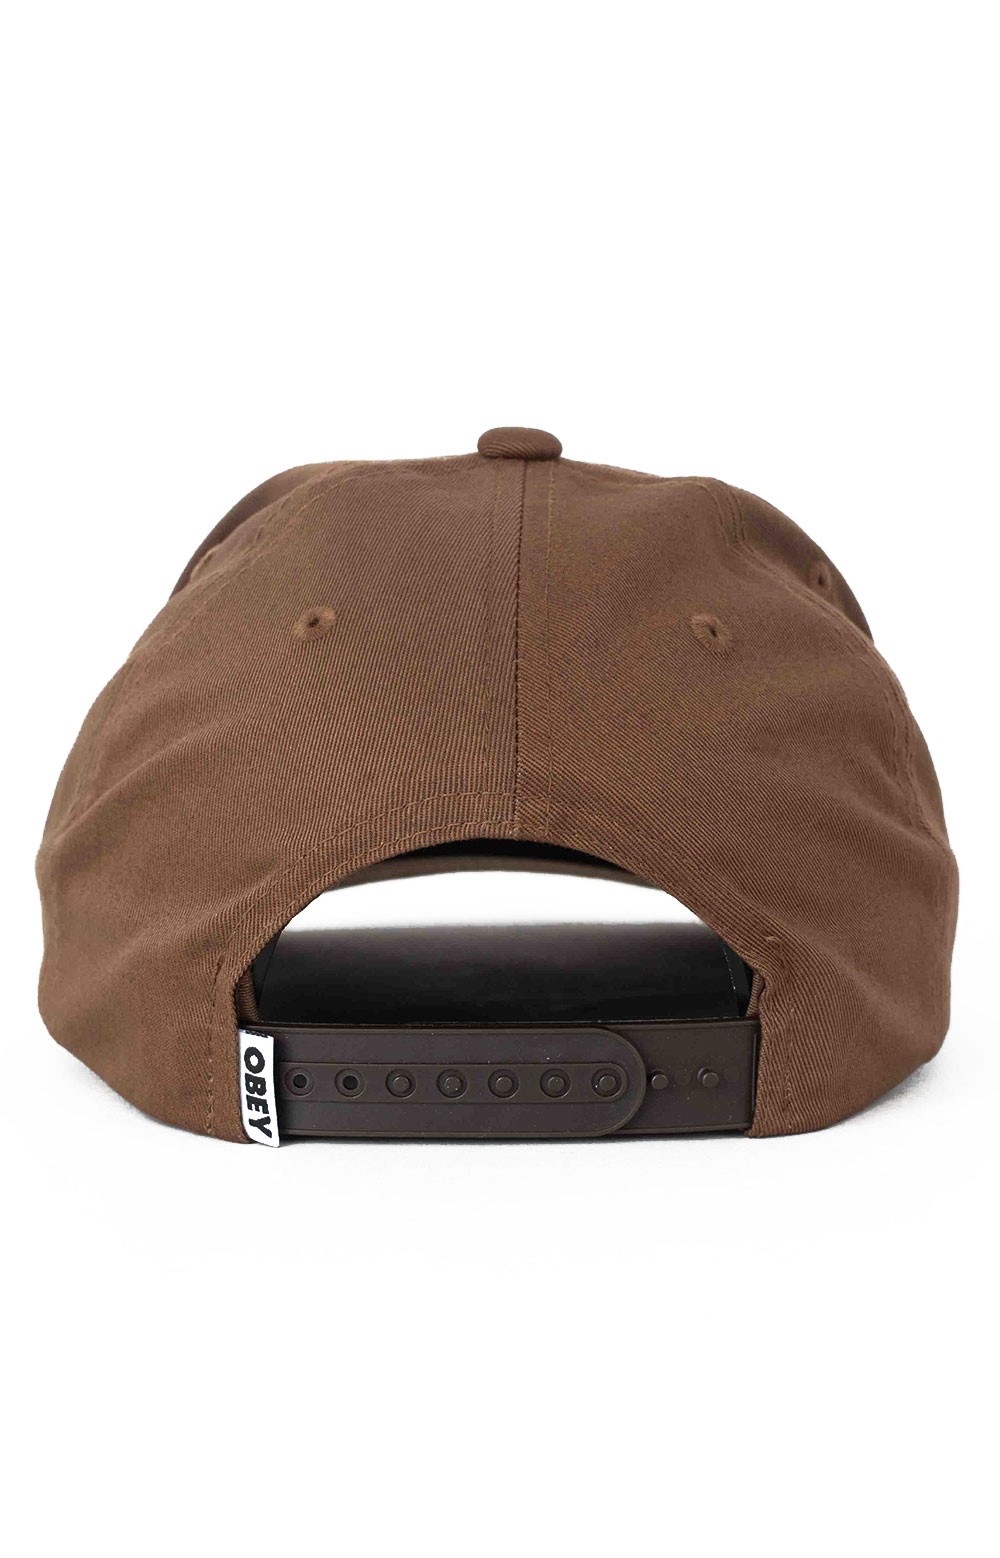 Lowercase Snap-Back Hat - Brown 3